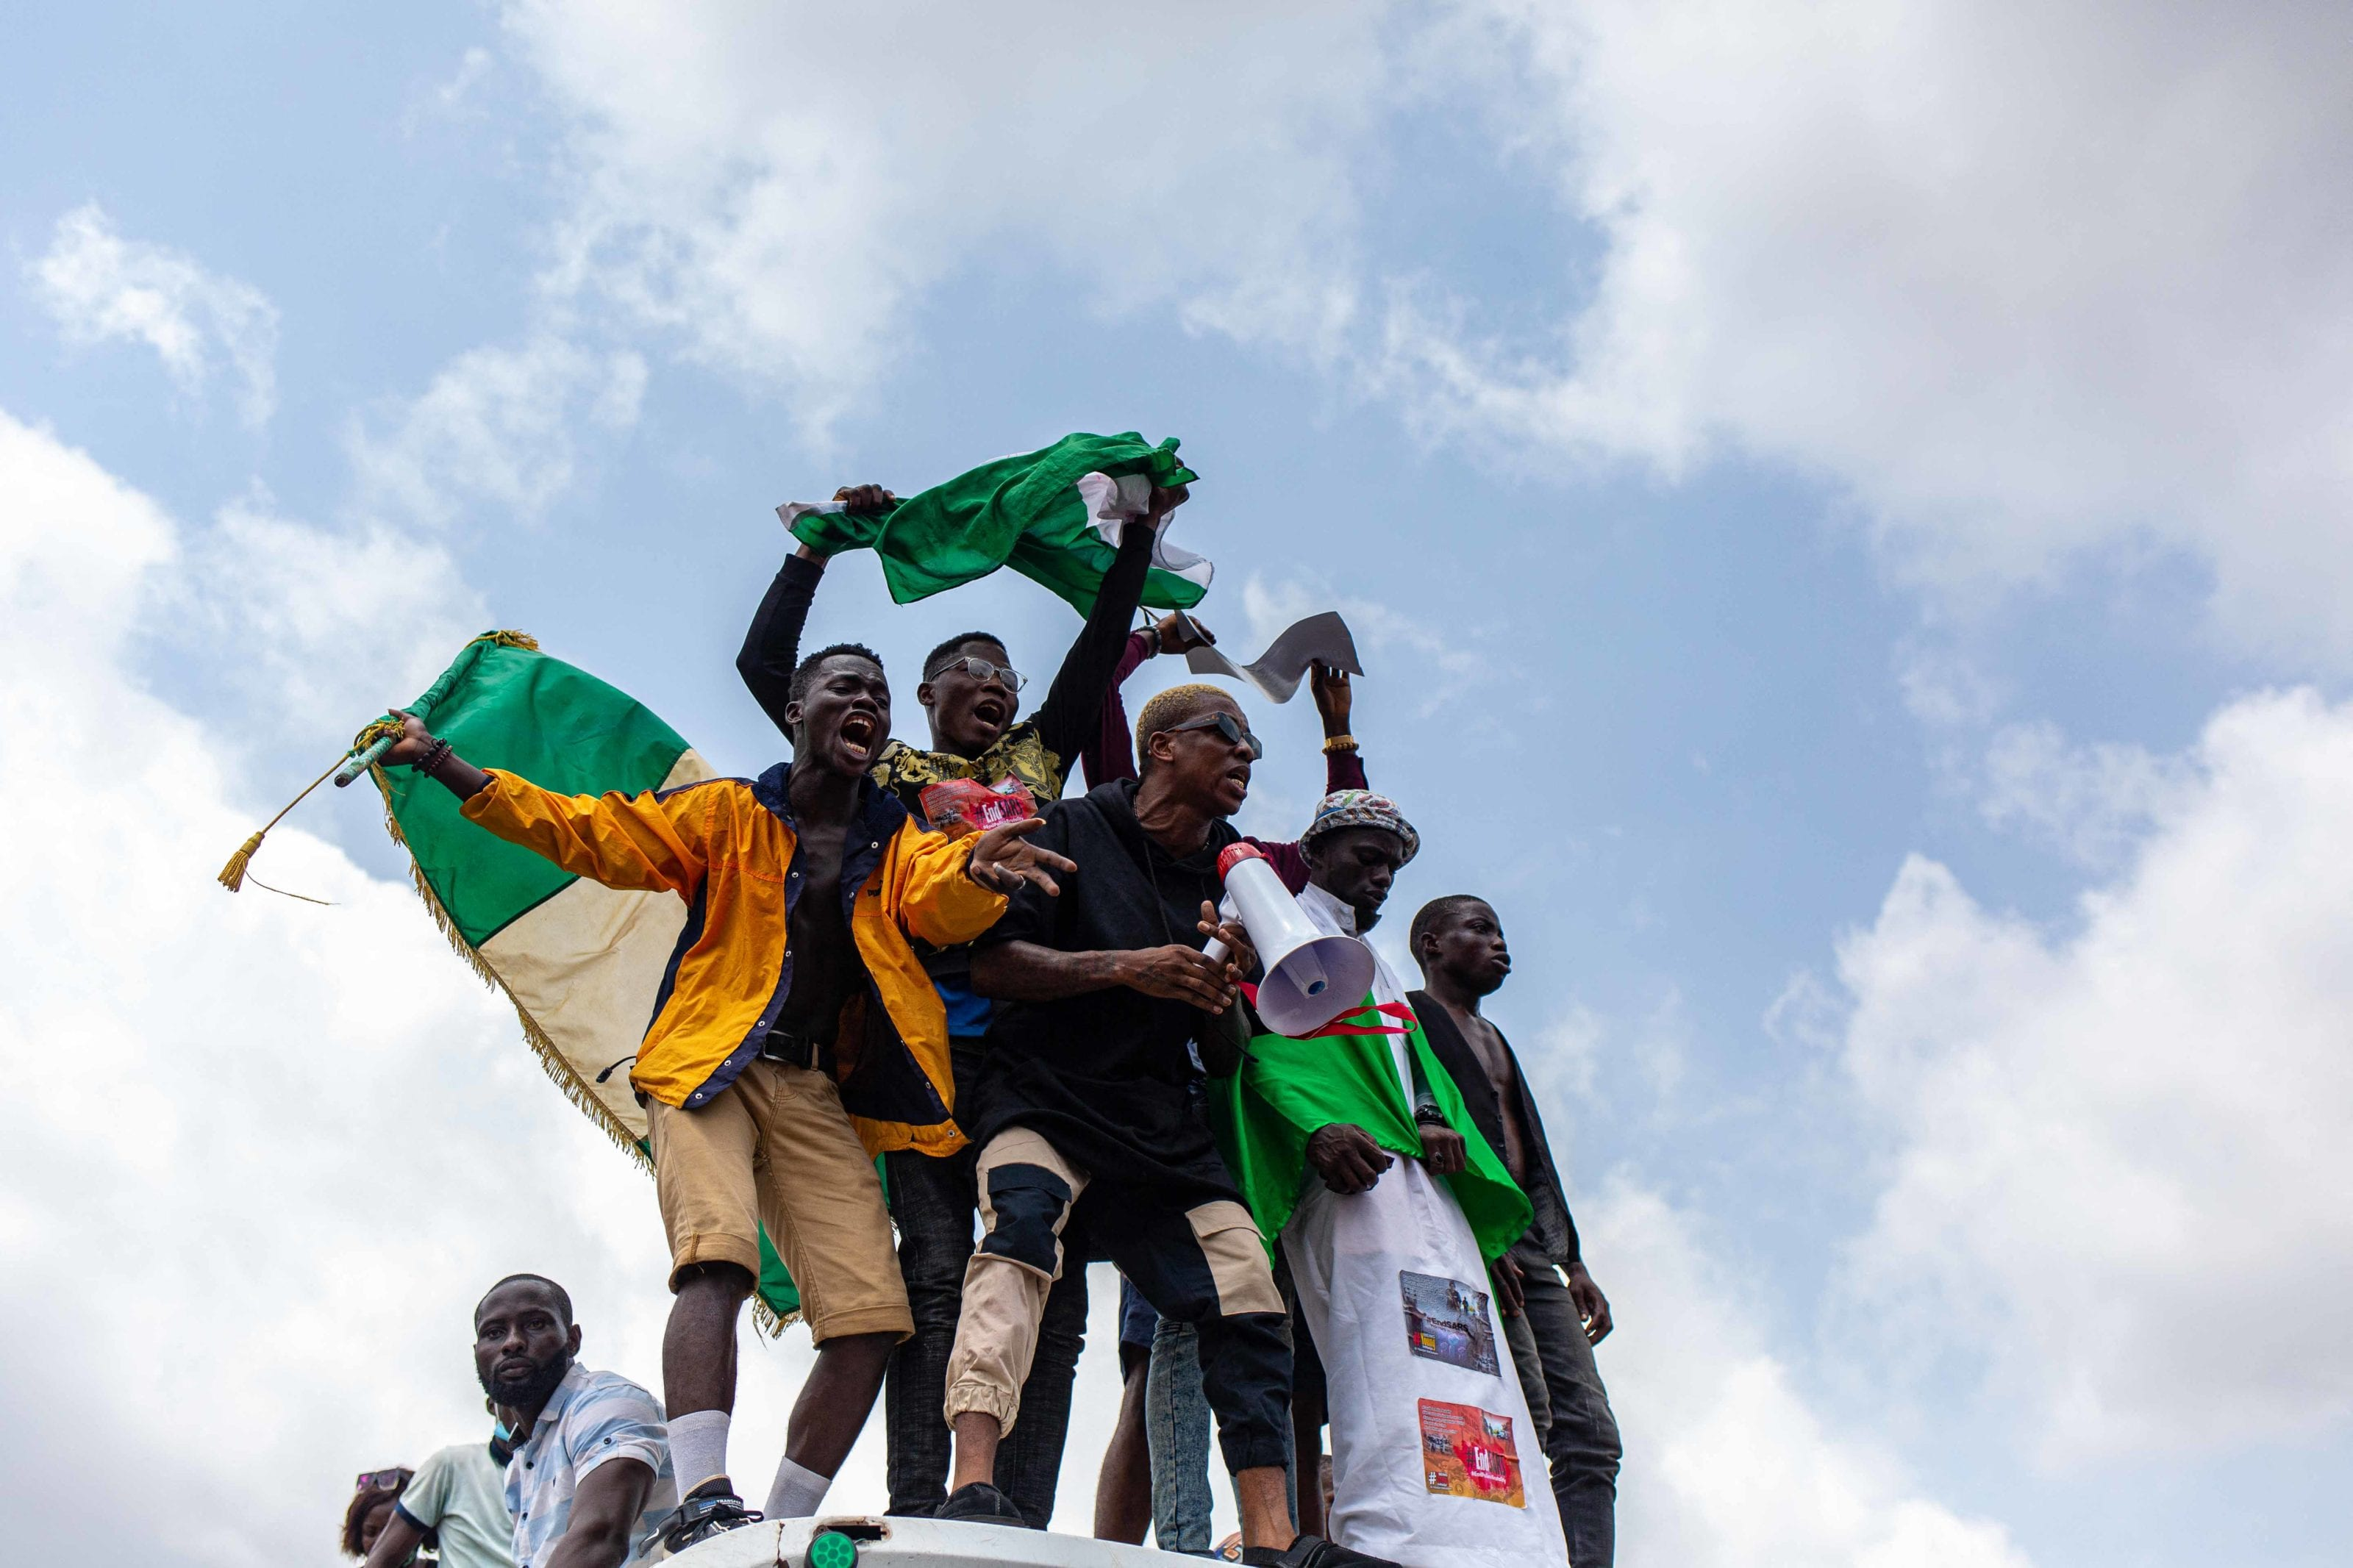 Nigerian youths seen waving the Nigerian national flag in front of a crowd in support of the ongoing protest against the unjust brutality of The Nigerian Police Force Unit named Special Anti-Robbery Squad (SARS) in Lagos on October 13, 2020. Nigerians took to the streets once again on October 13, 2020, in several cities for fresh protests against police brutality, bringing key roads to a standstill in economic hub Lagos.  Demonstrations organised on social media erupted earlier this month calling for the abolition of a notorious police unit accused of unlawful arrests, torture and extra-judicial killings. The government gave in to the demand on October 11, 2020, announcing that the federal Special Anti-Robbery Squad (SARS) was being disbanded in a rare concession to people power in Africa's most populous nation. Benson Ibeabuchi / AFP